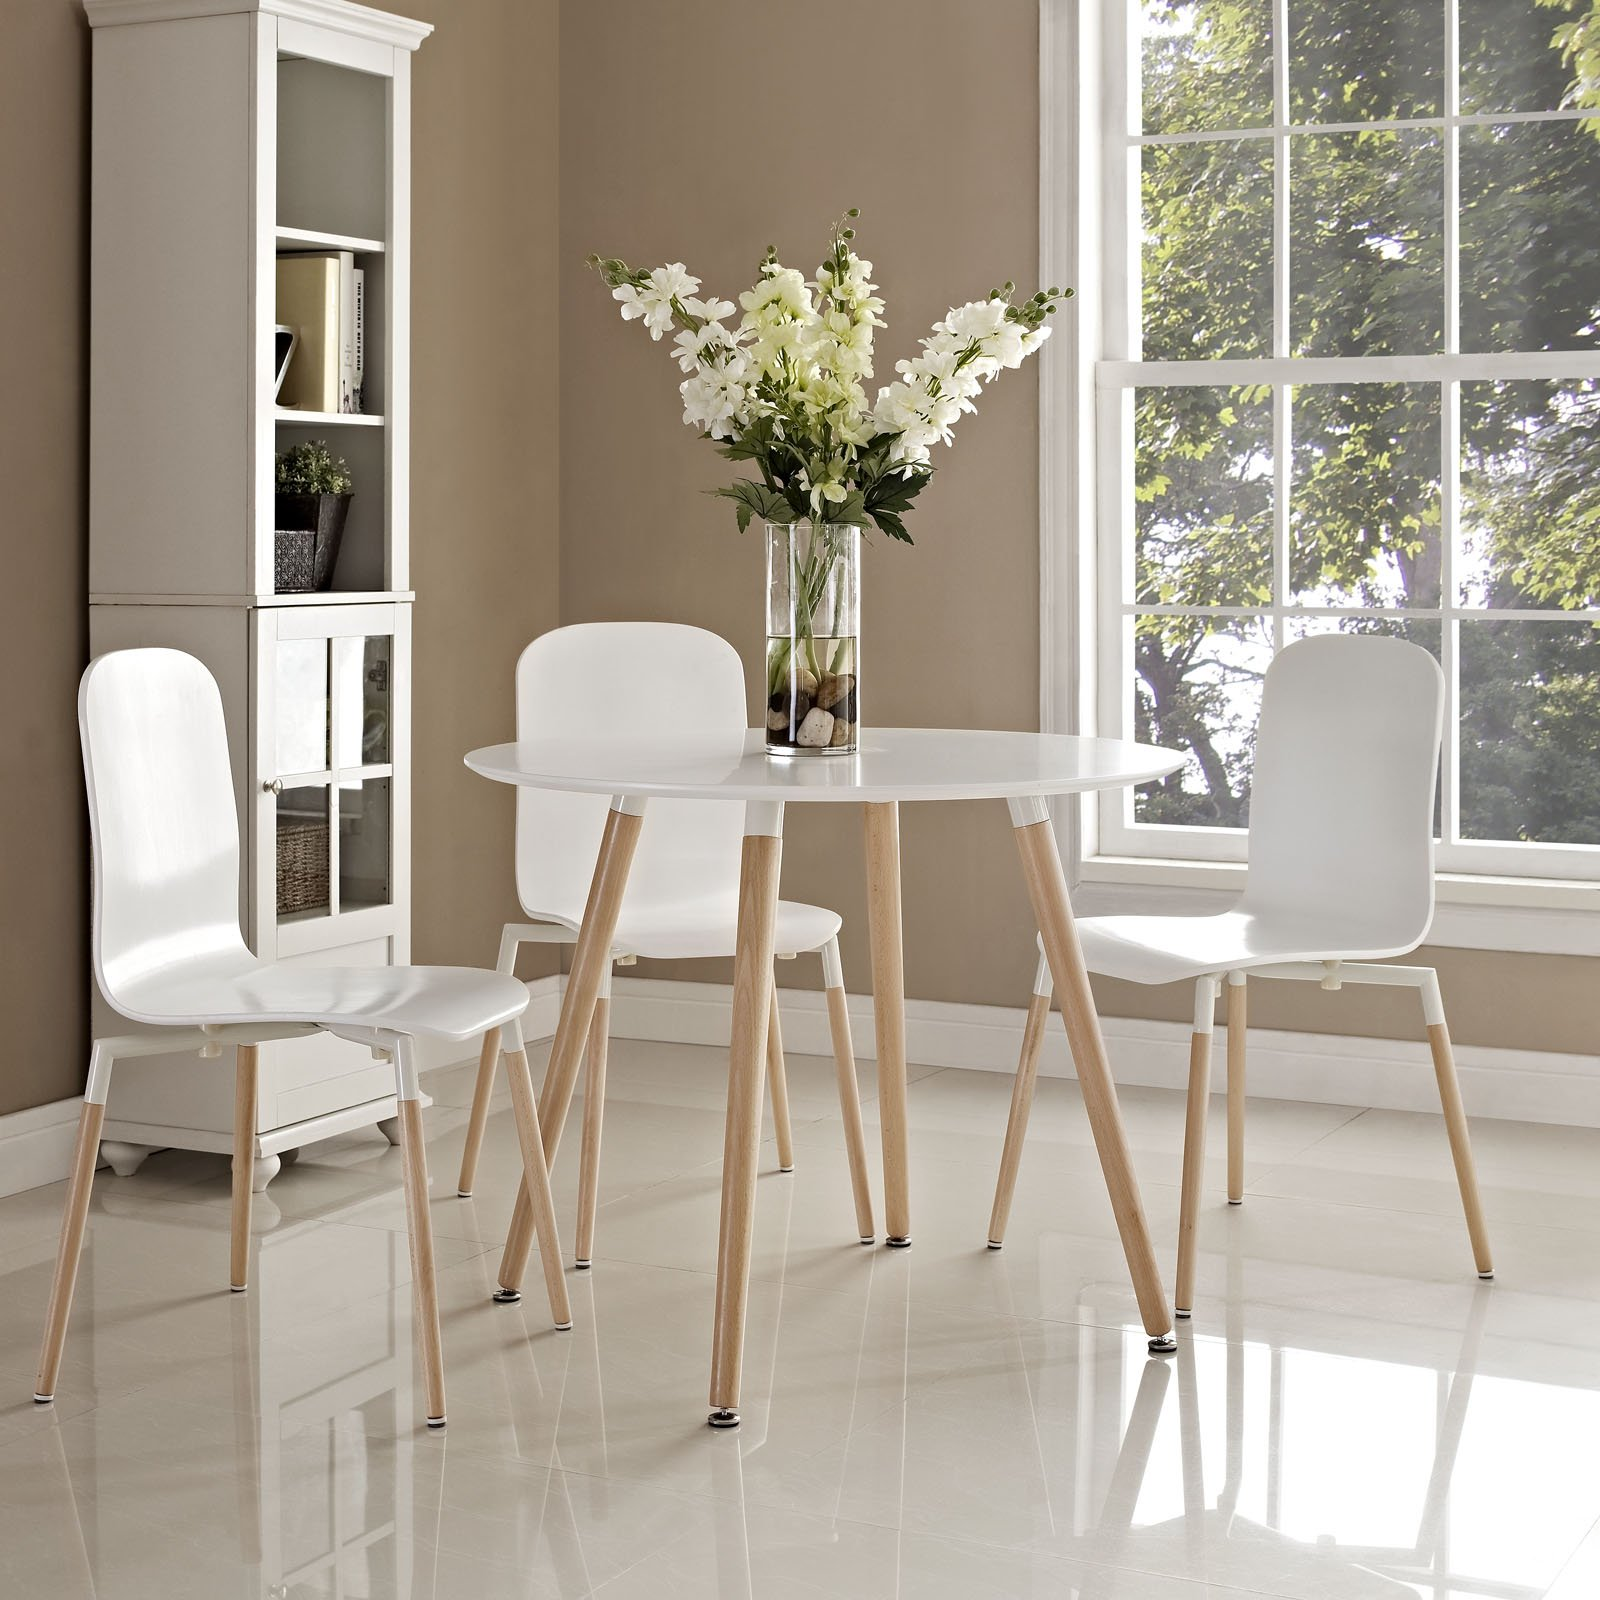 Modway Track Circular Dining Table in White by Modway (Image #4)